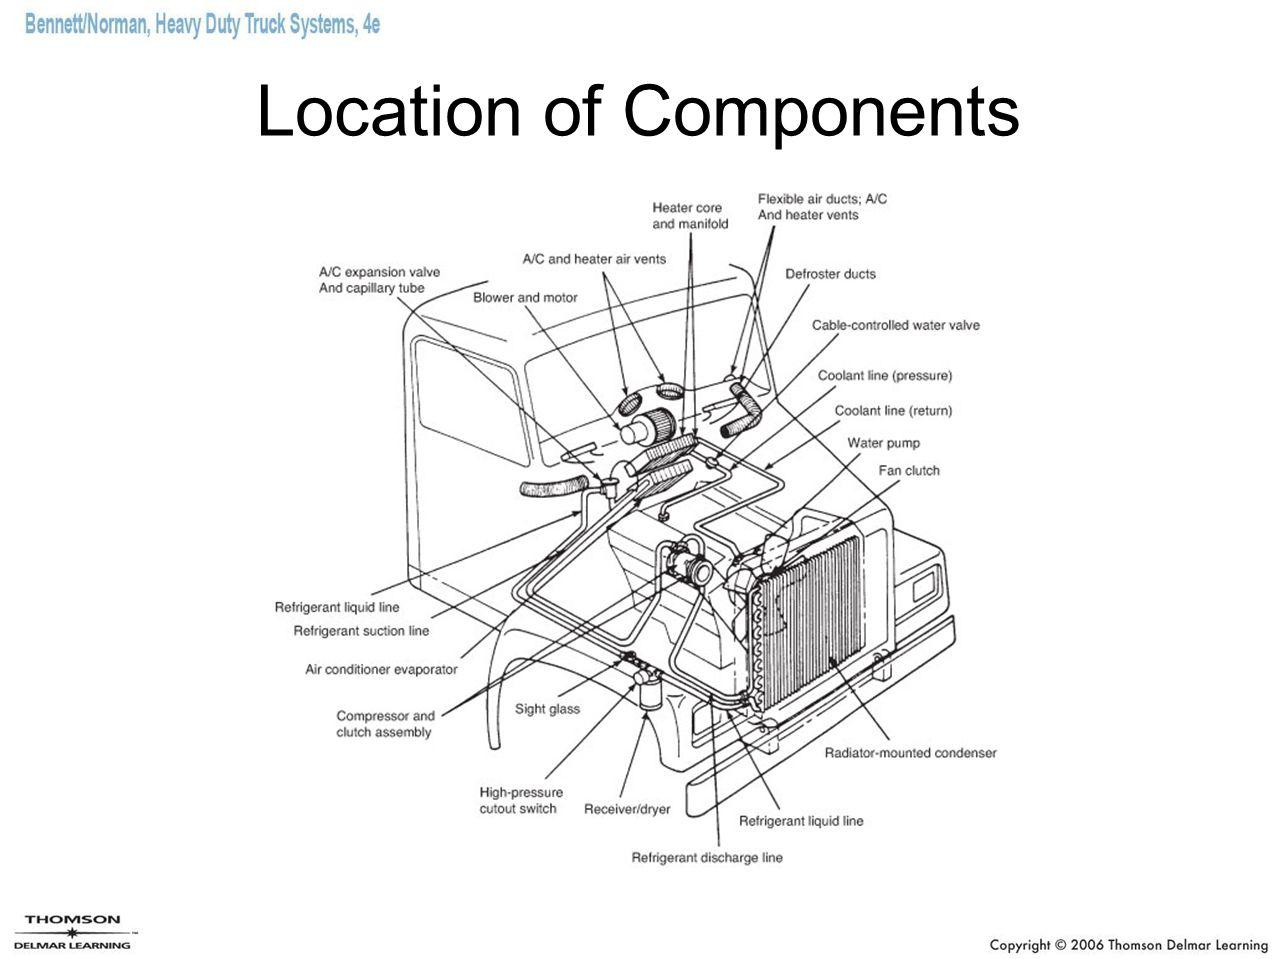 Location of Components